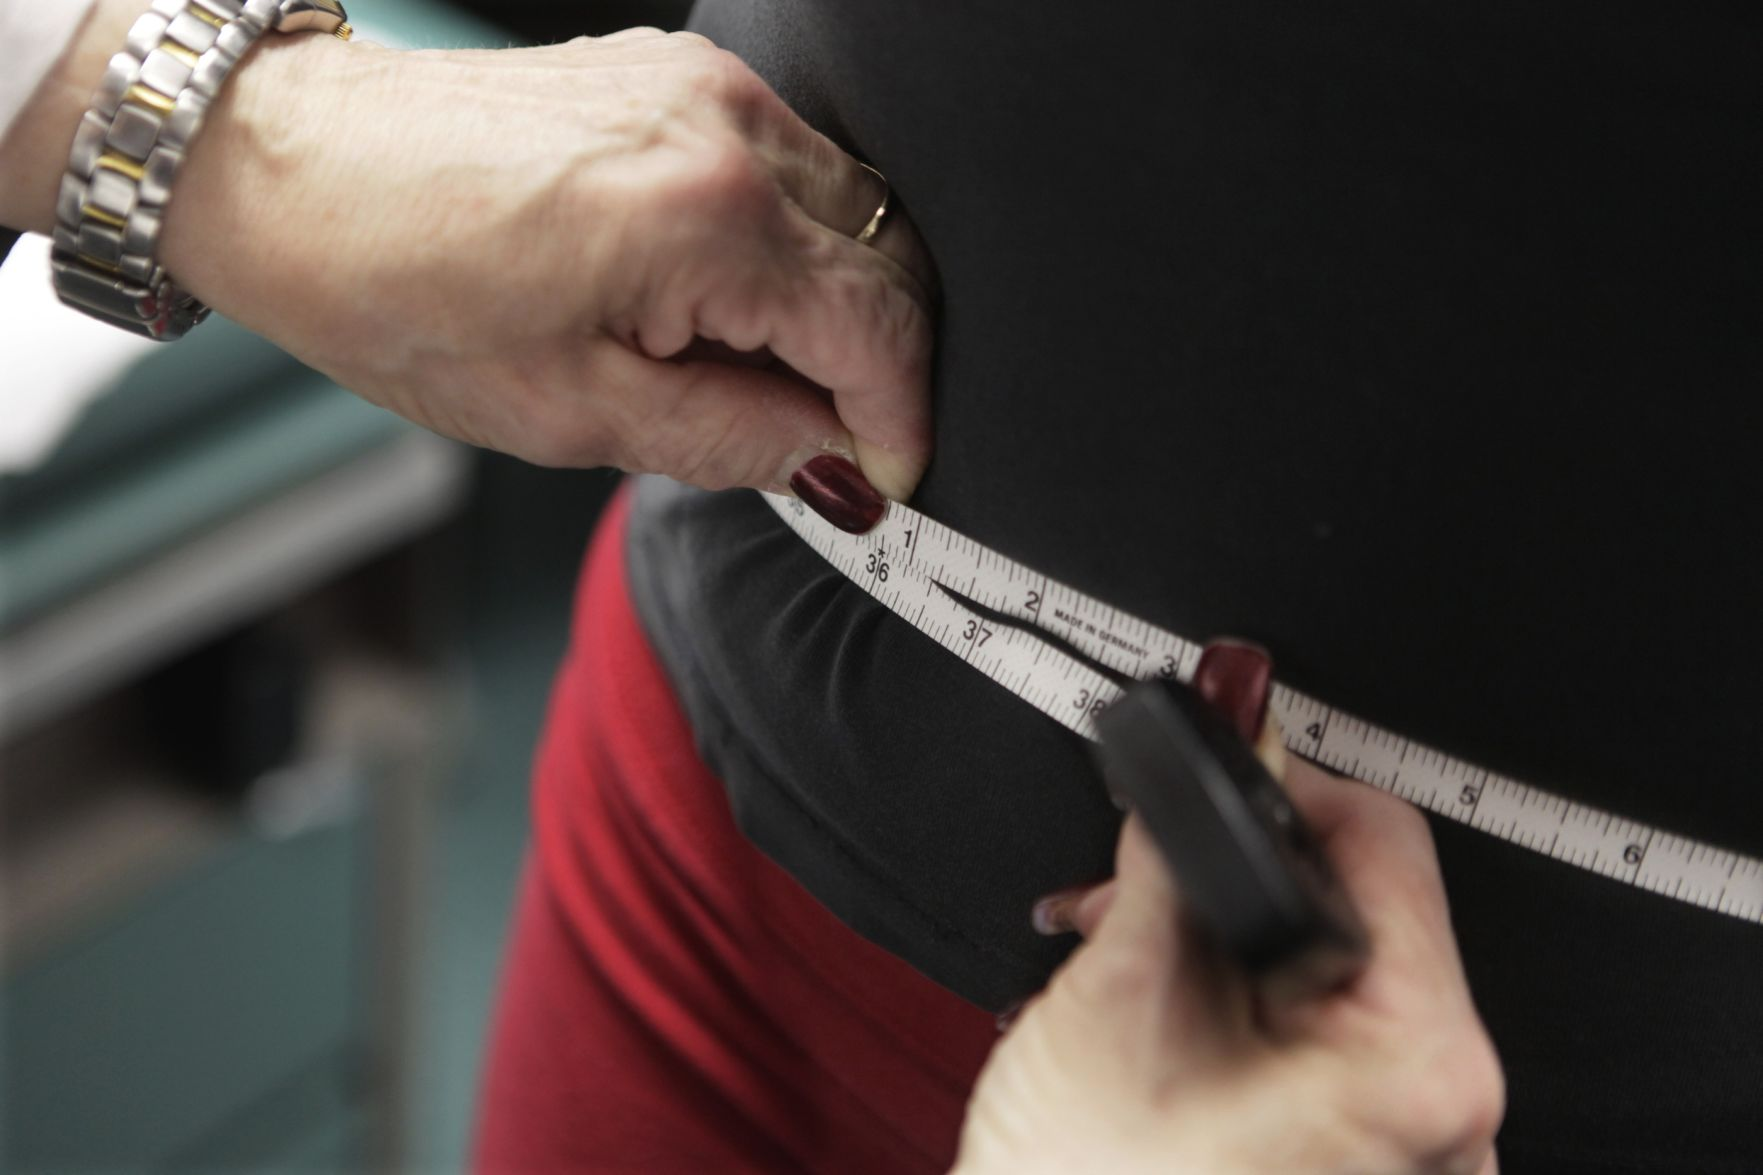 Colorado obesity rate among fastest growing in nation